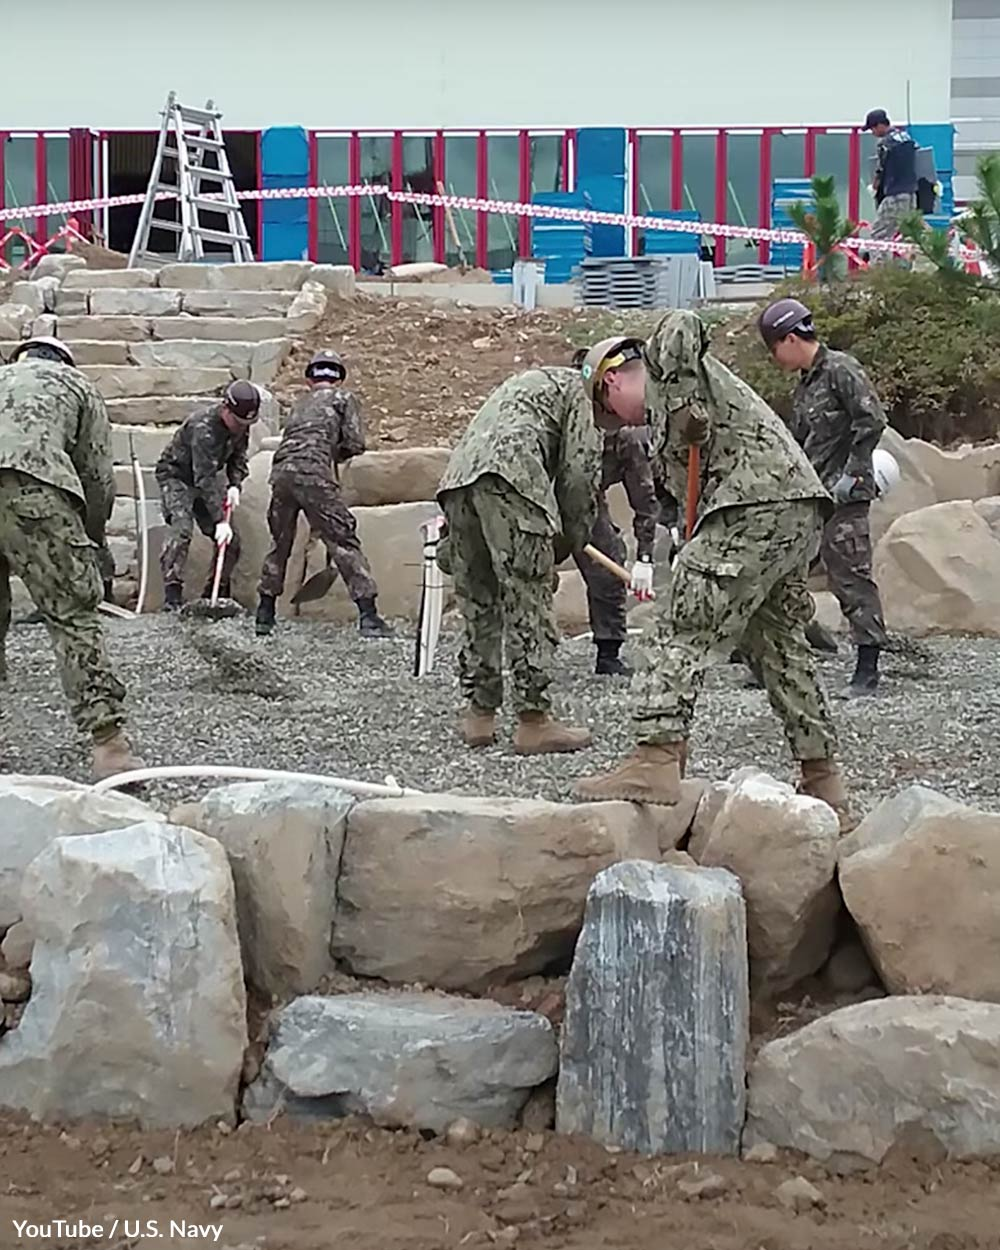 The Seabees are a construction battalion in the US Navy.